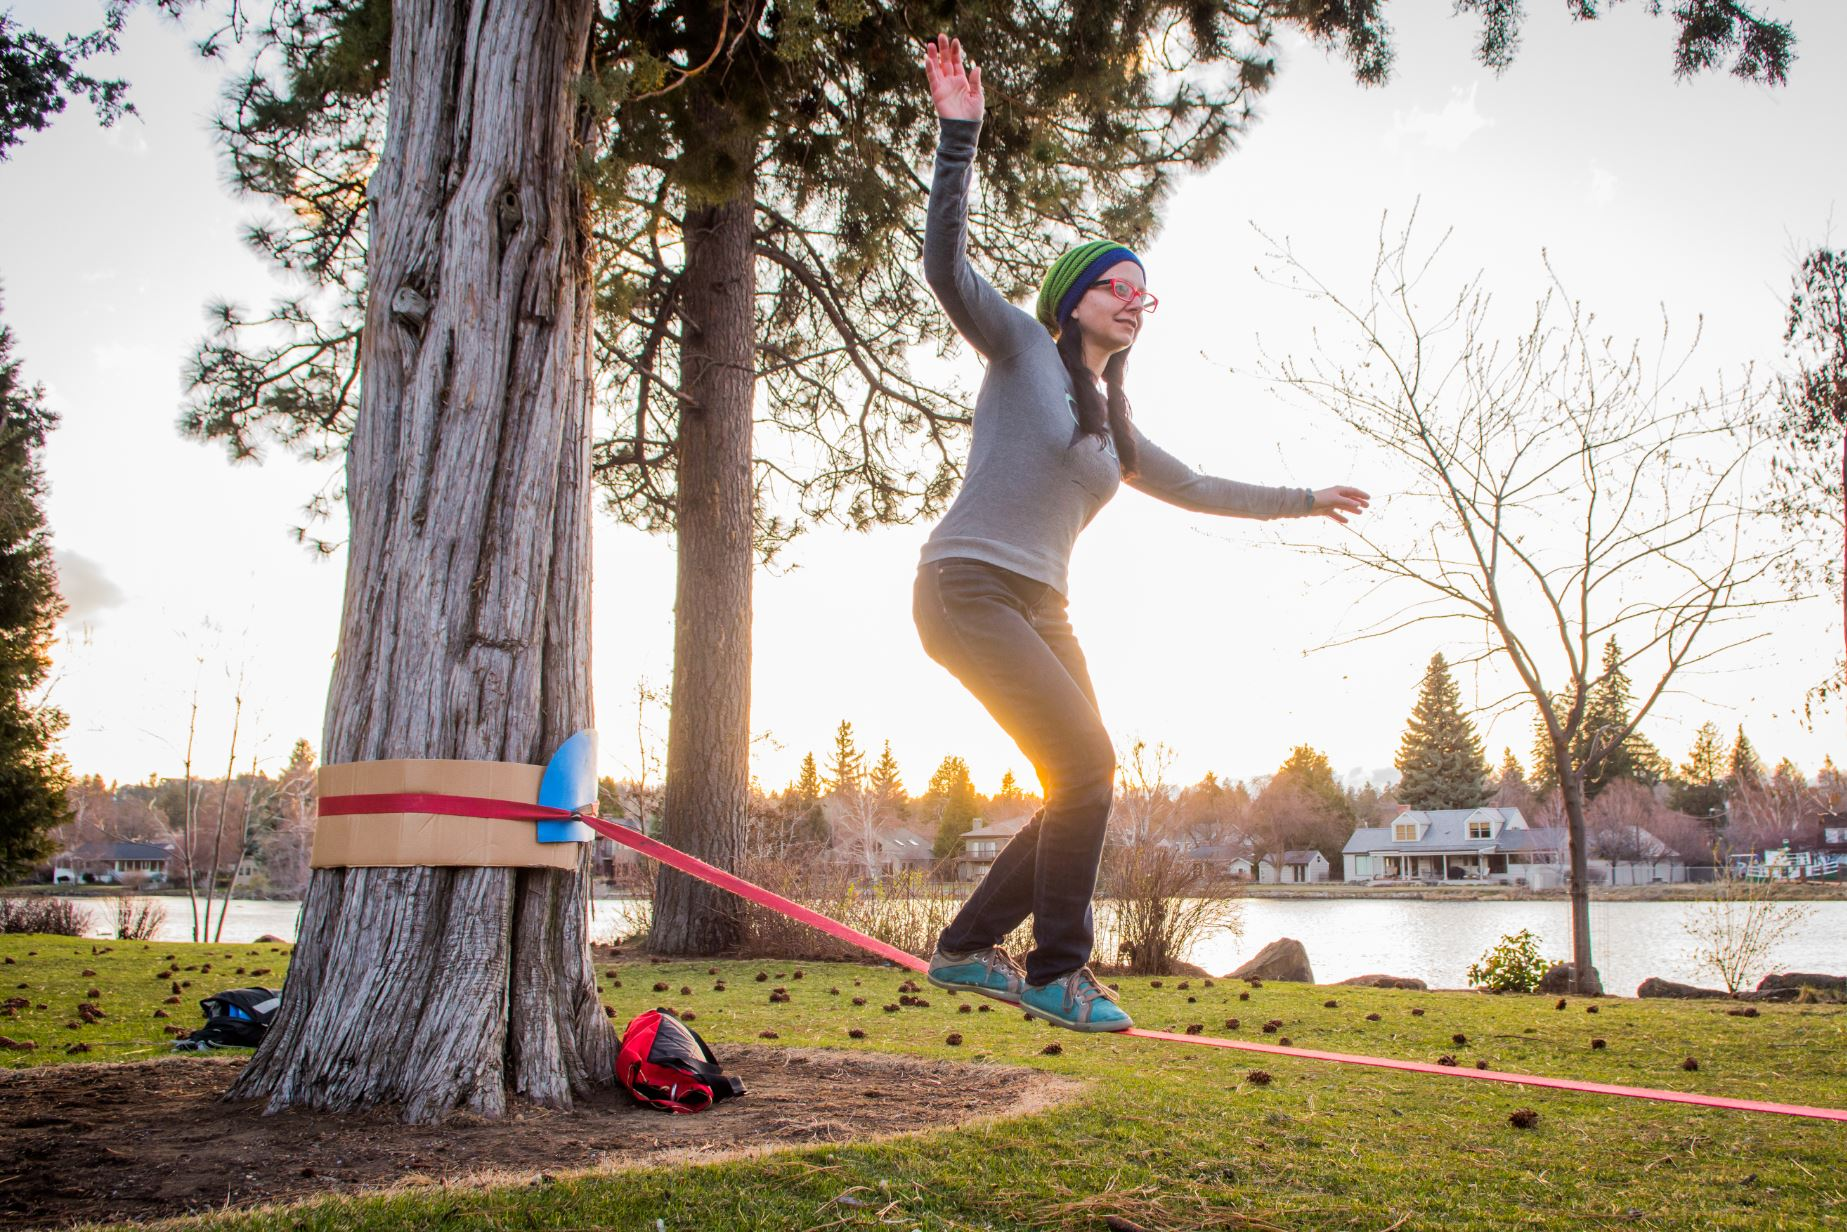 Slacklining in parks bend park and recreation district for Juniper swim and fitness pool schedule